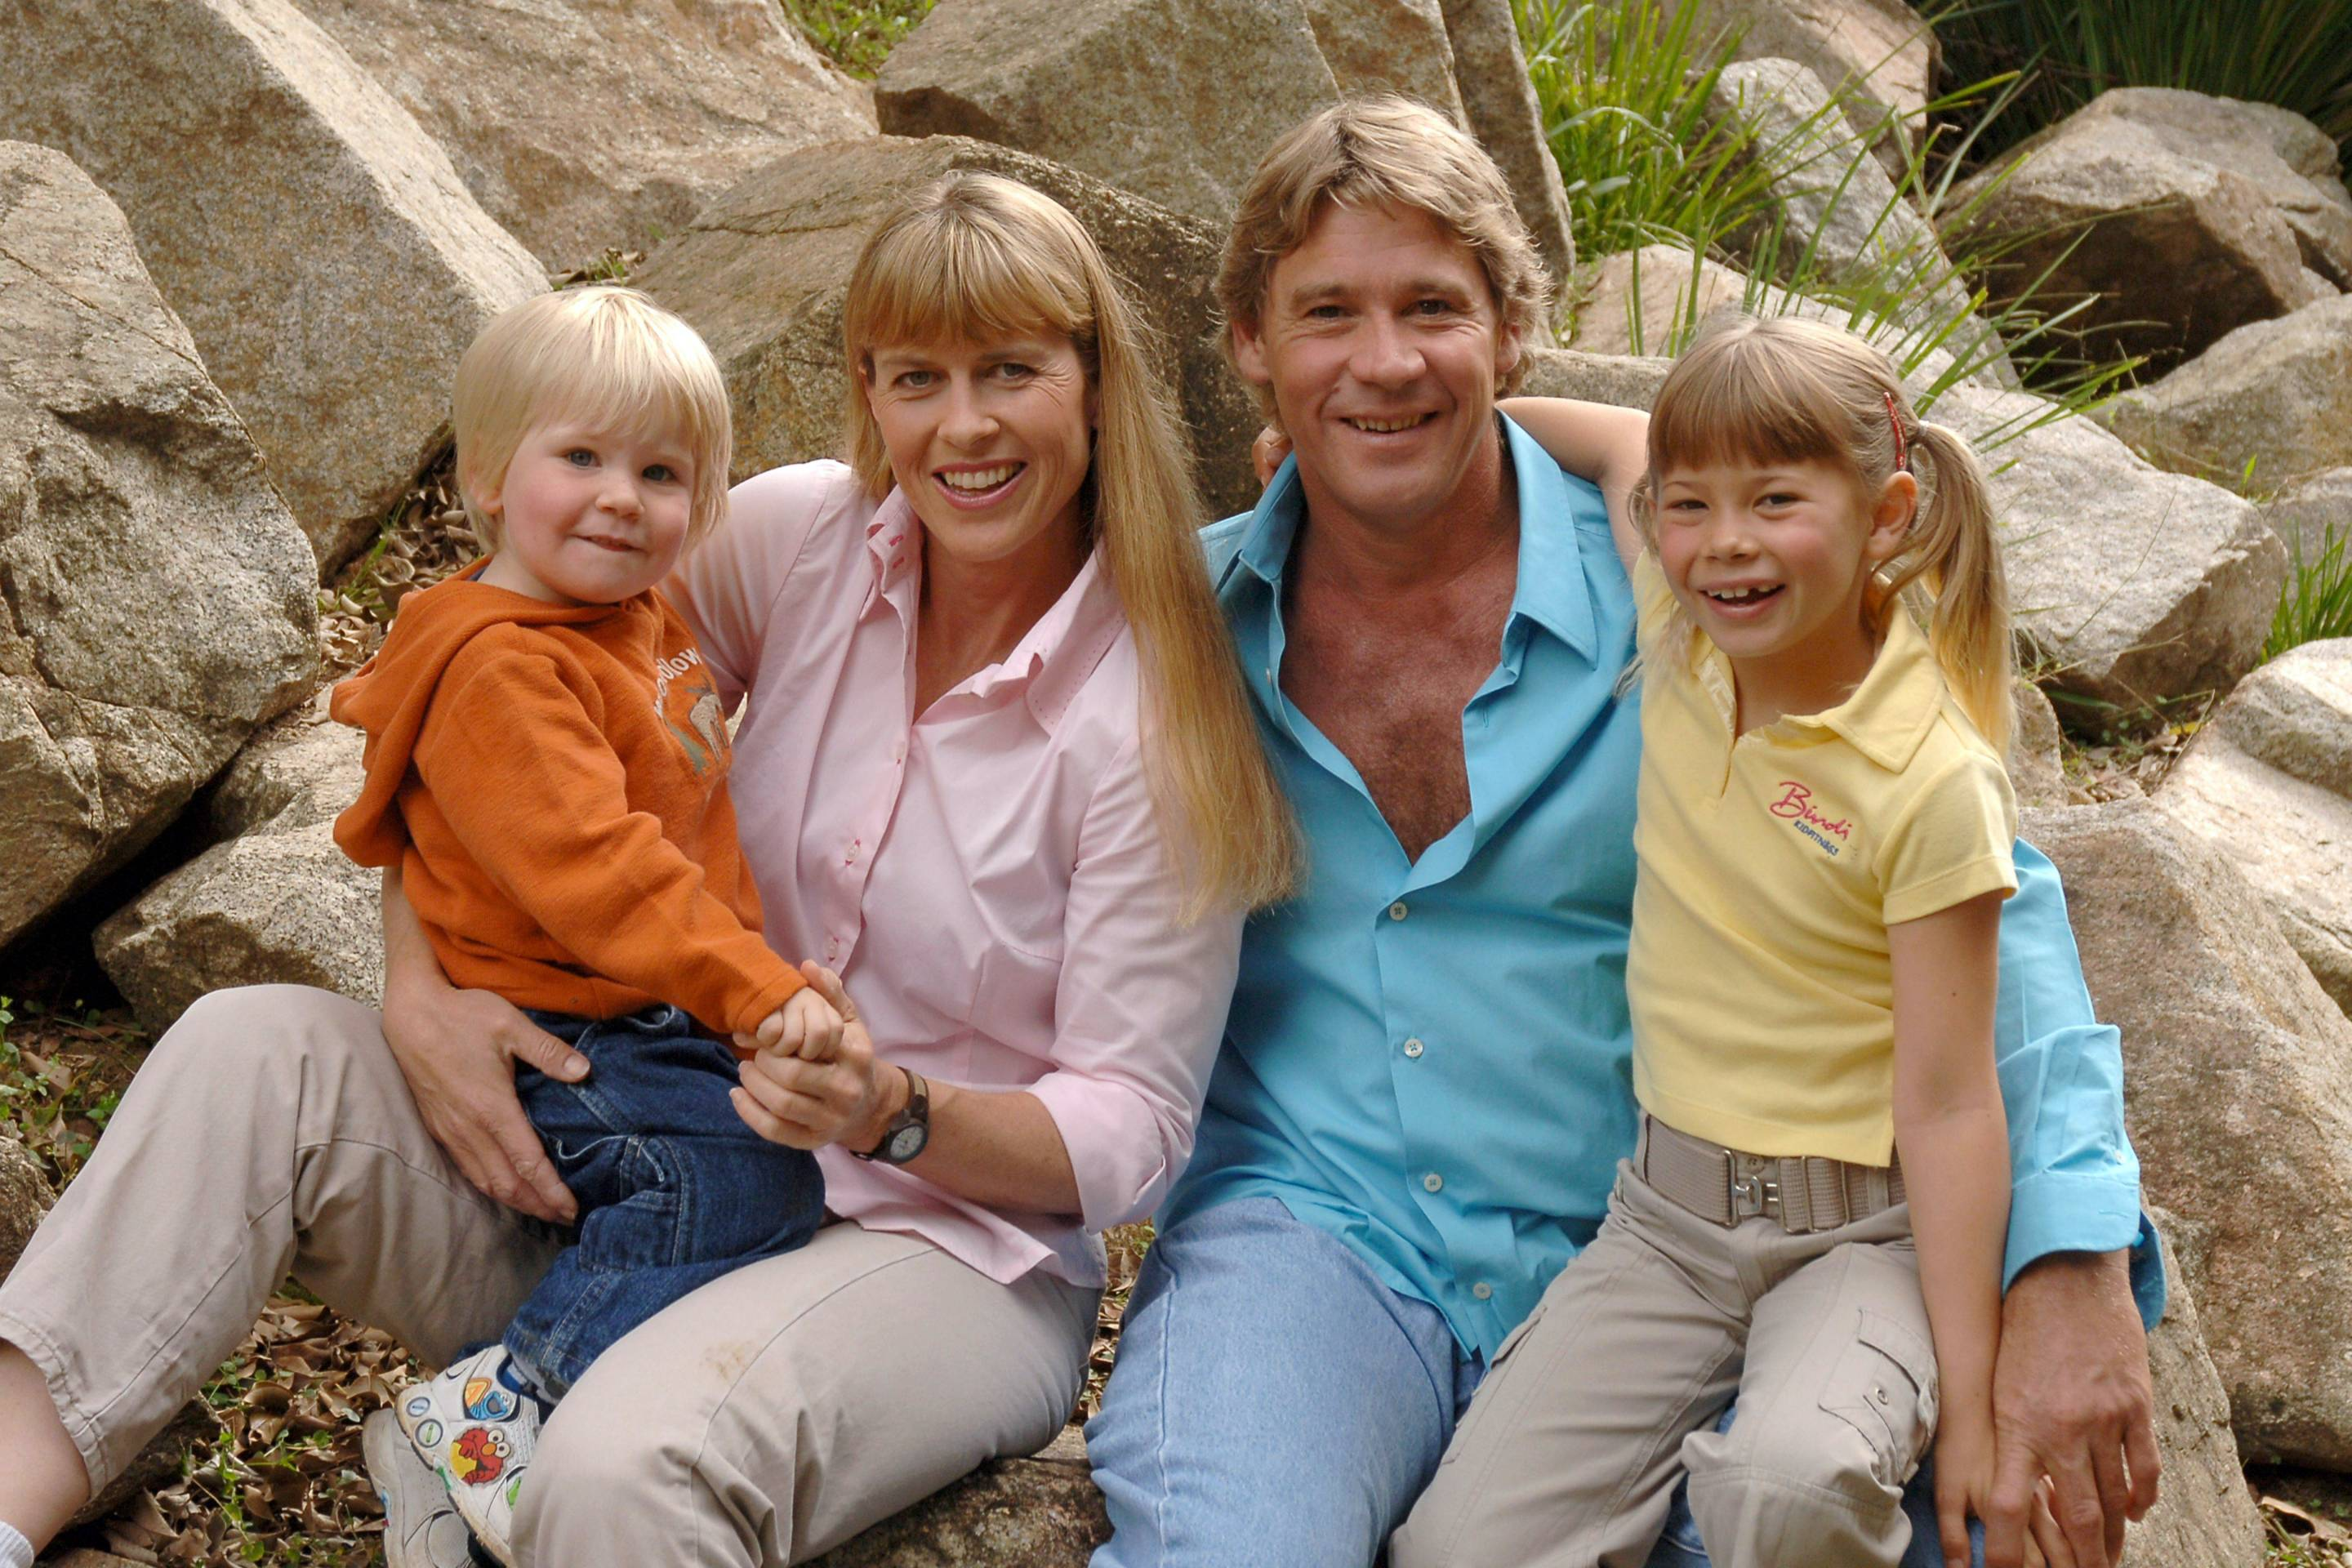 Steve Irwin with wife and kids